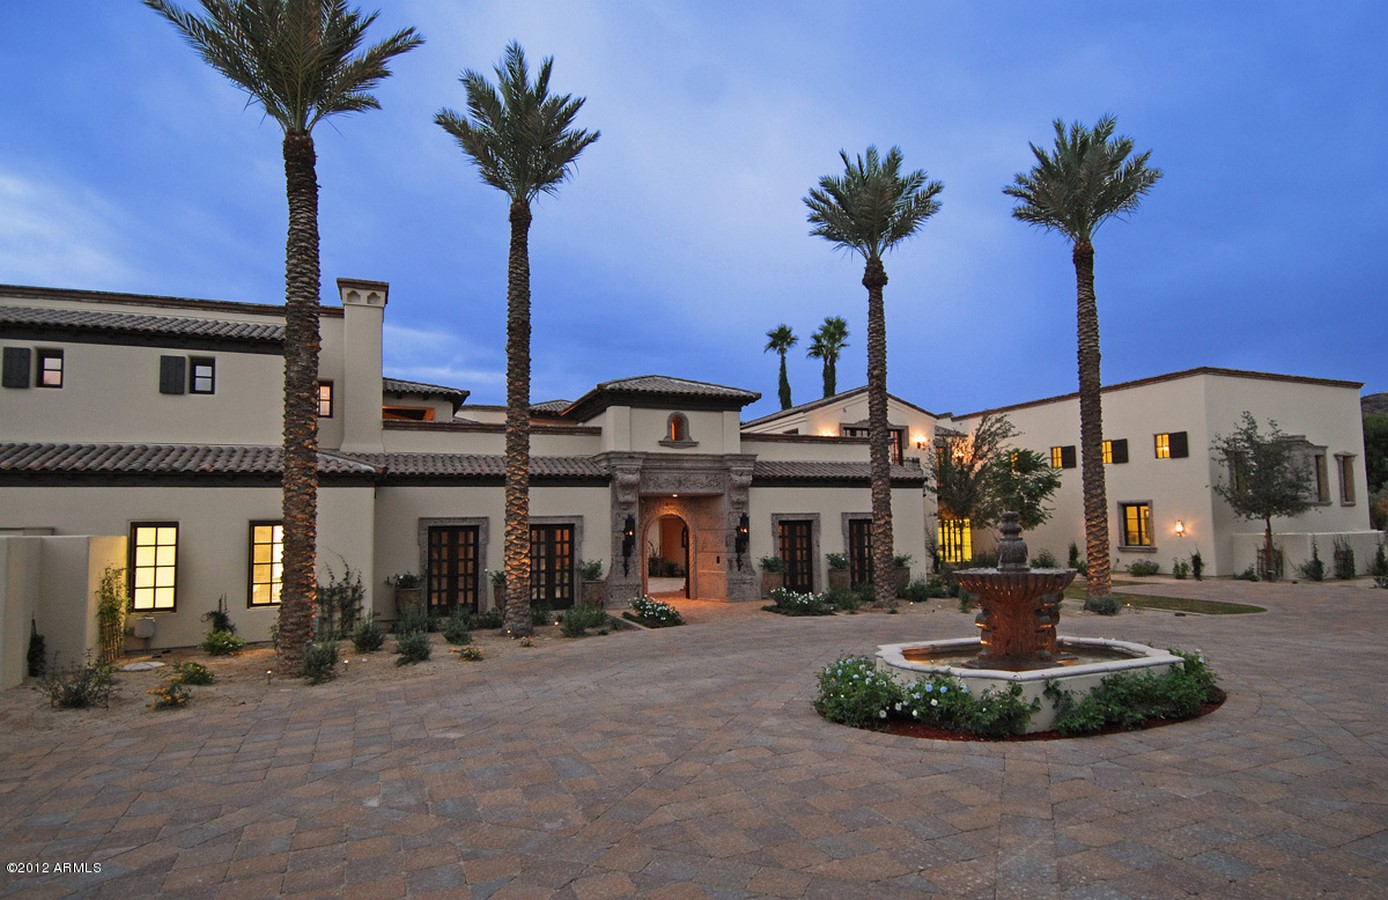 Architects in Scottsdale - Top 75 Architects in Scottsdale - sheet24